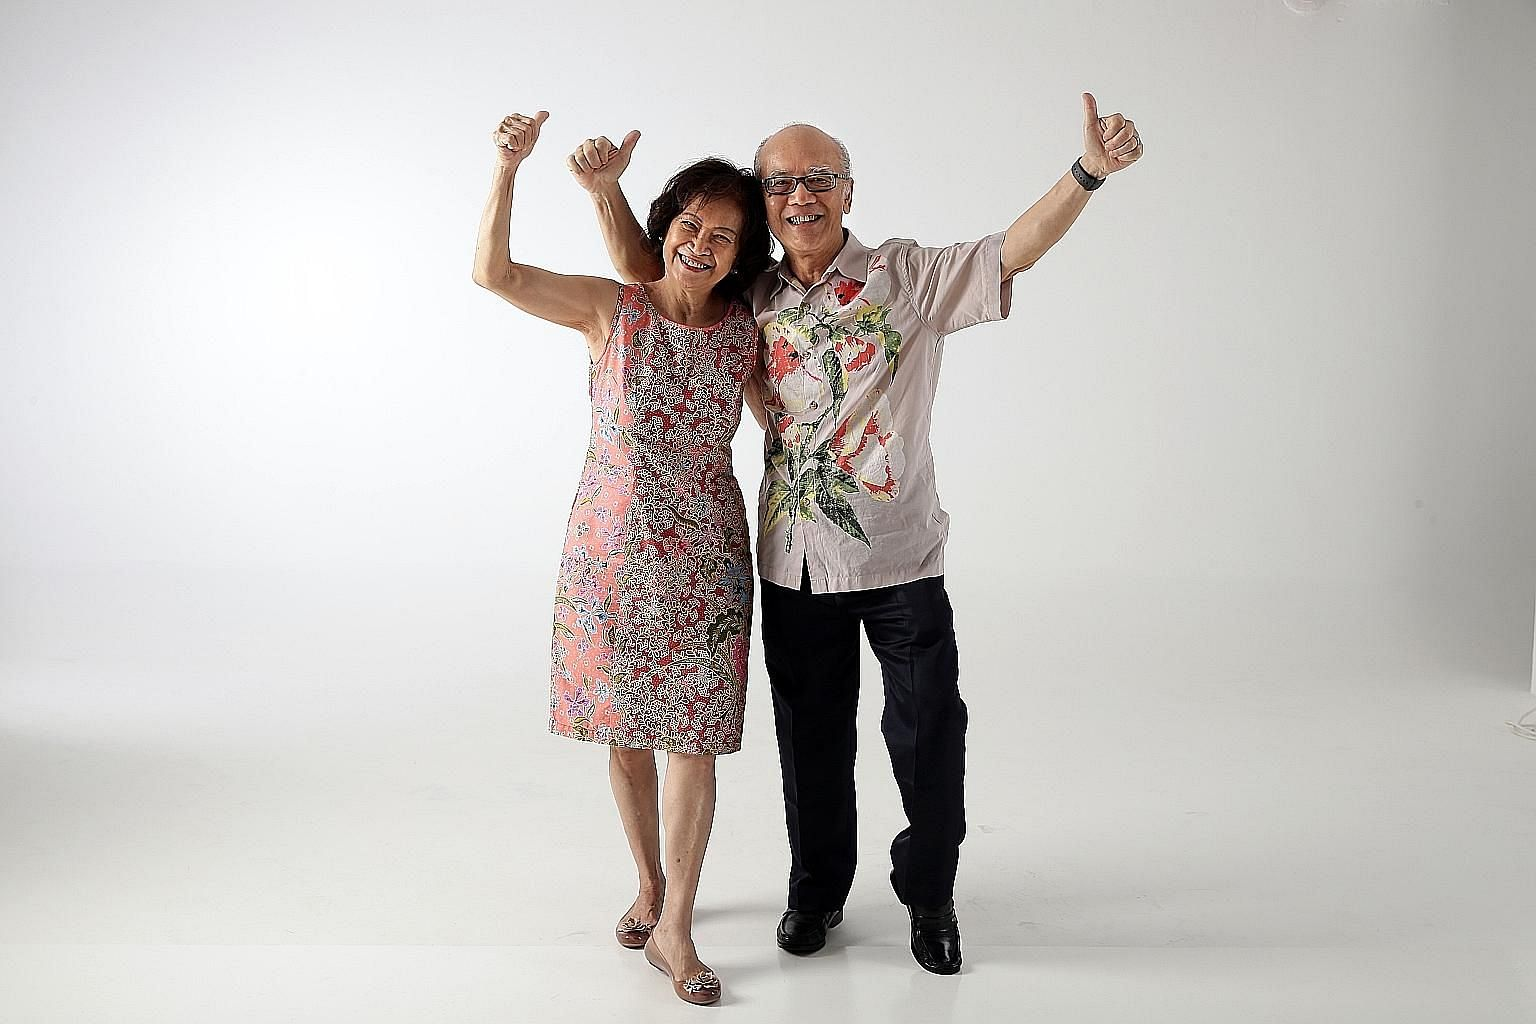 Mr Richard Tong, with his wife Rita, won a glamping trip for two to Shangri-La, Yunnan, worth $10,000, which is part of the ST+ news with benefits programme.